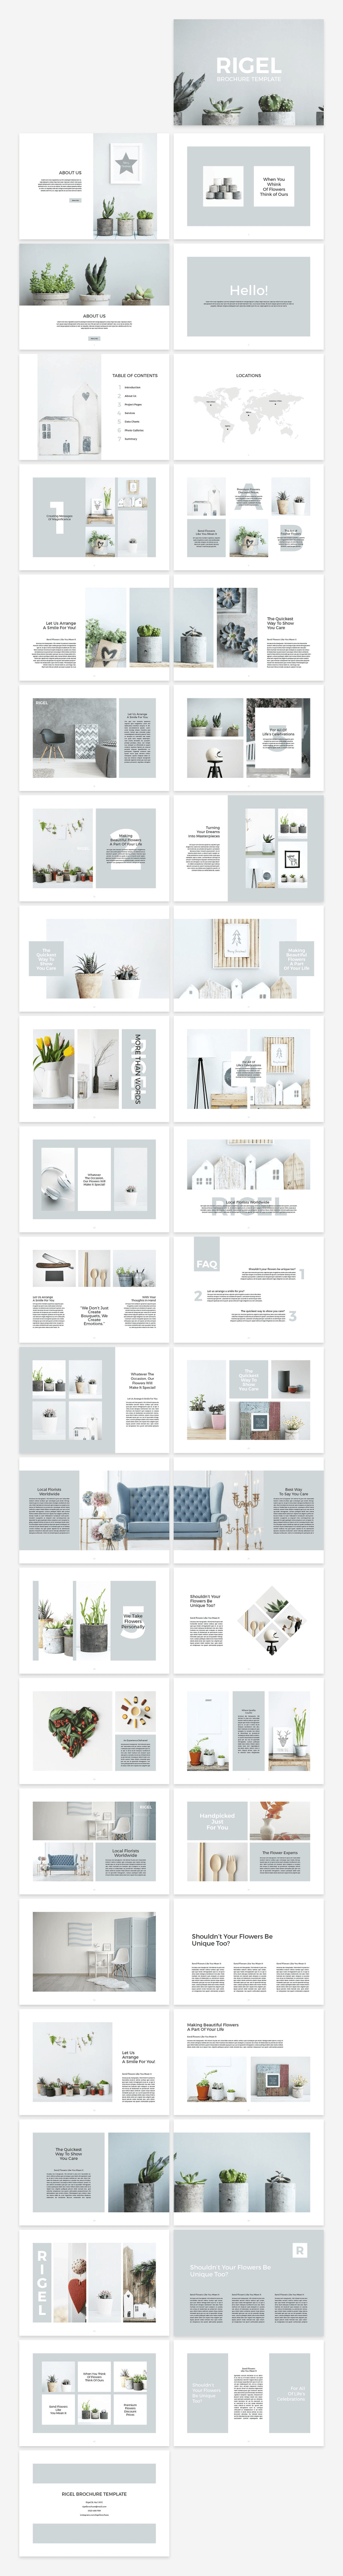 indesign-professional-print-templates-81